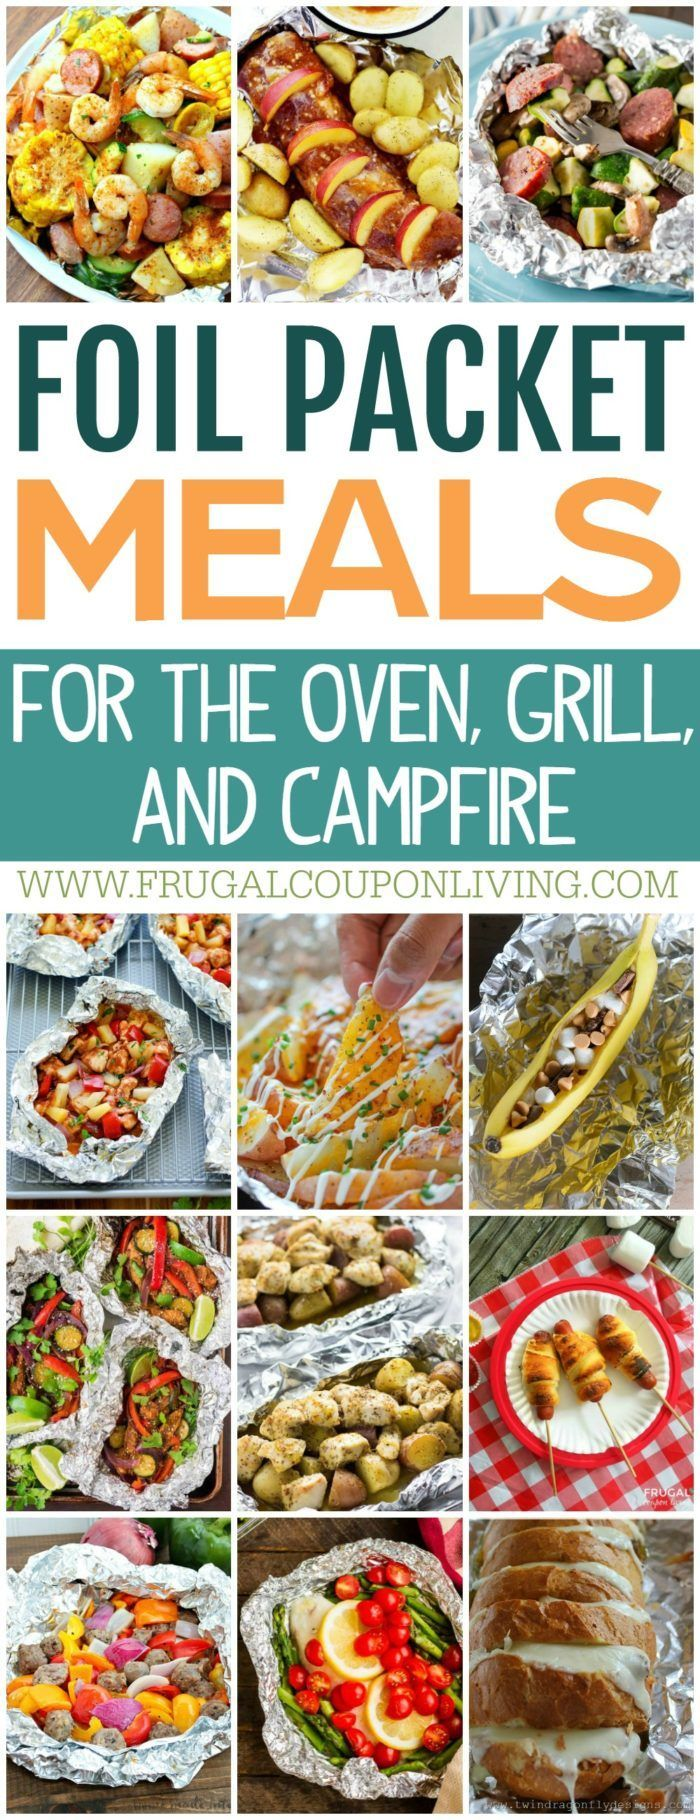 Creative and fun Foil Packet Meals for the grill, oven or campfire on Frugal Coupon Living. Delicious recipes and various cooking techniques to make the most creative foil pack entrees, desserts, sides and more!